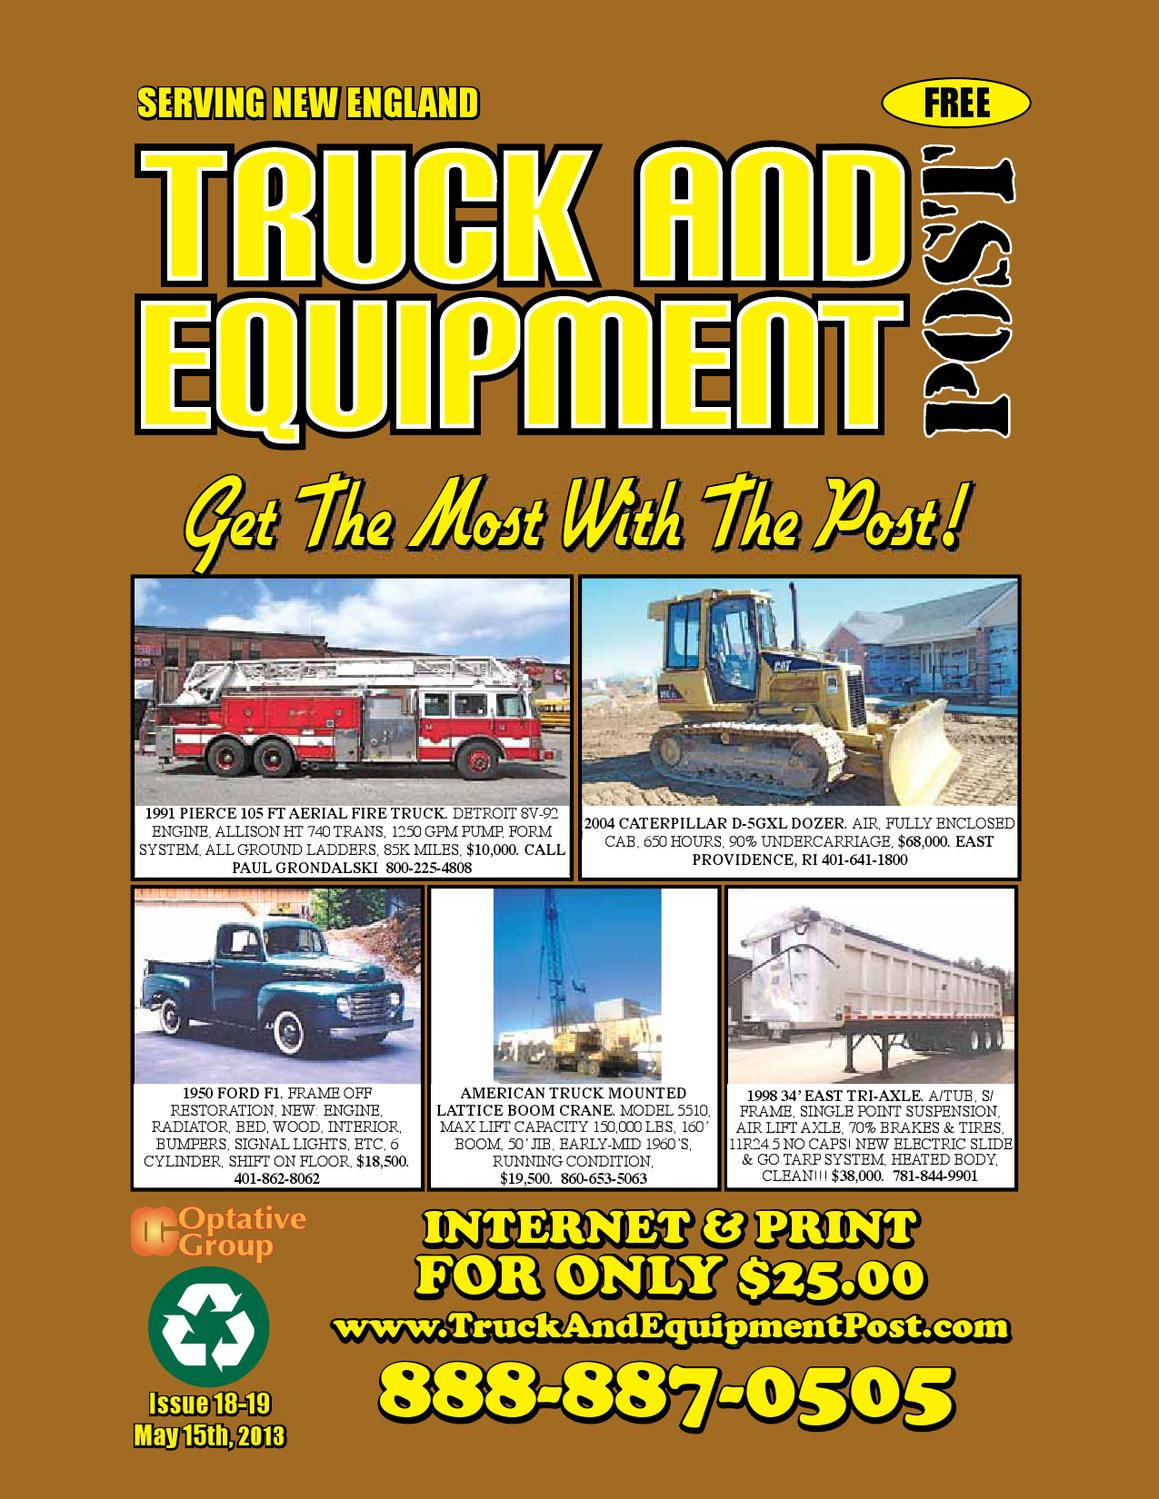 Truck And Equipment Post - Issue #18-19, 2013 by 1ClickAway